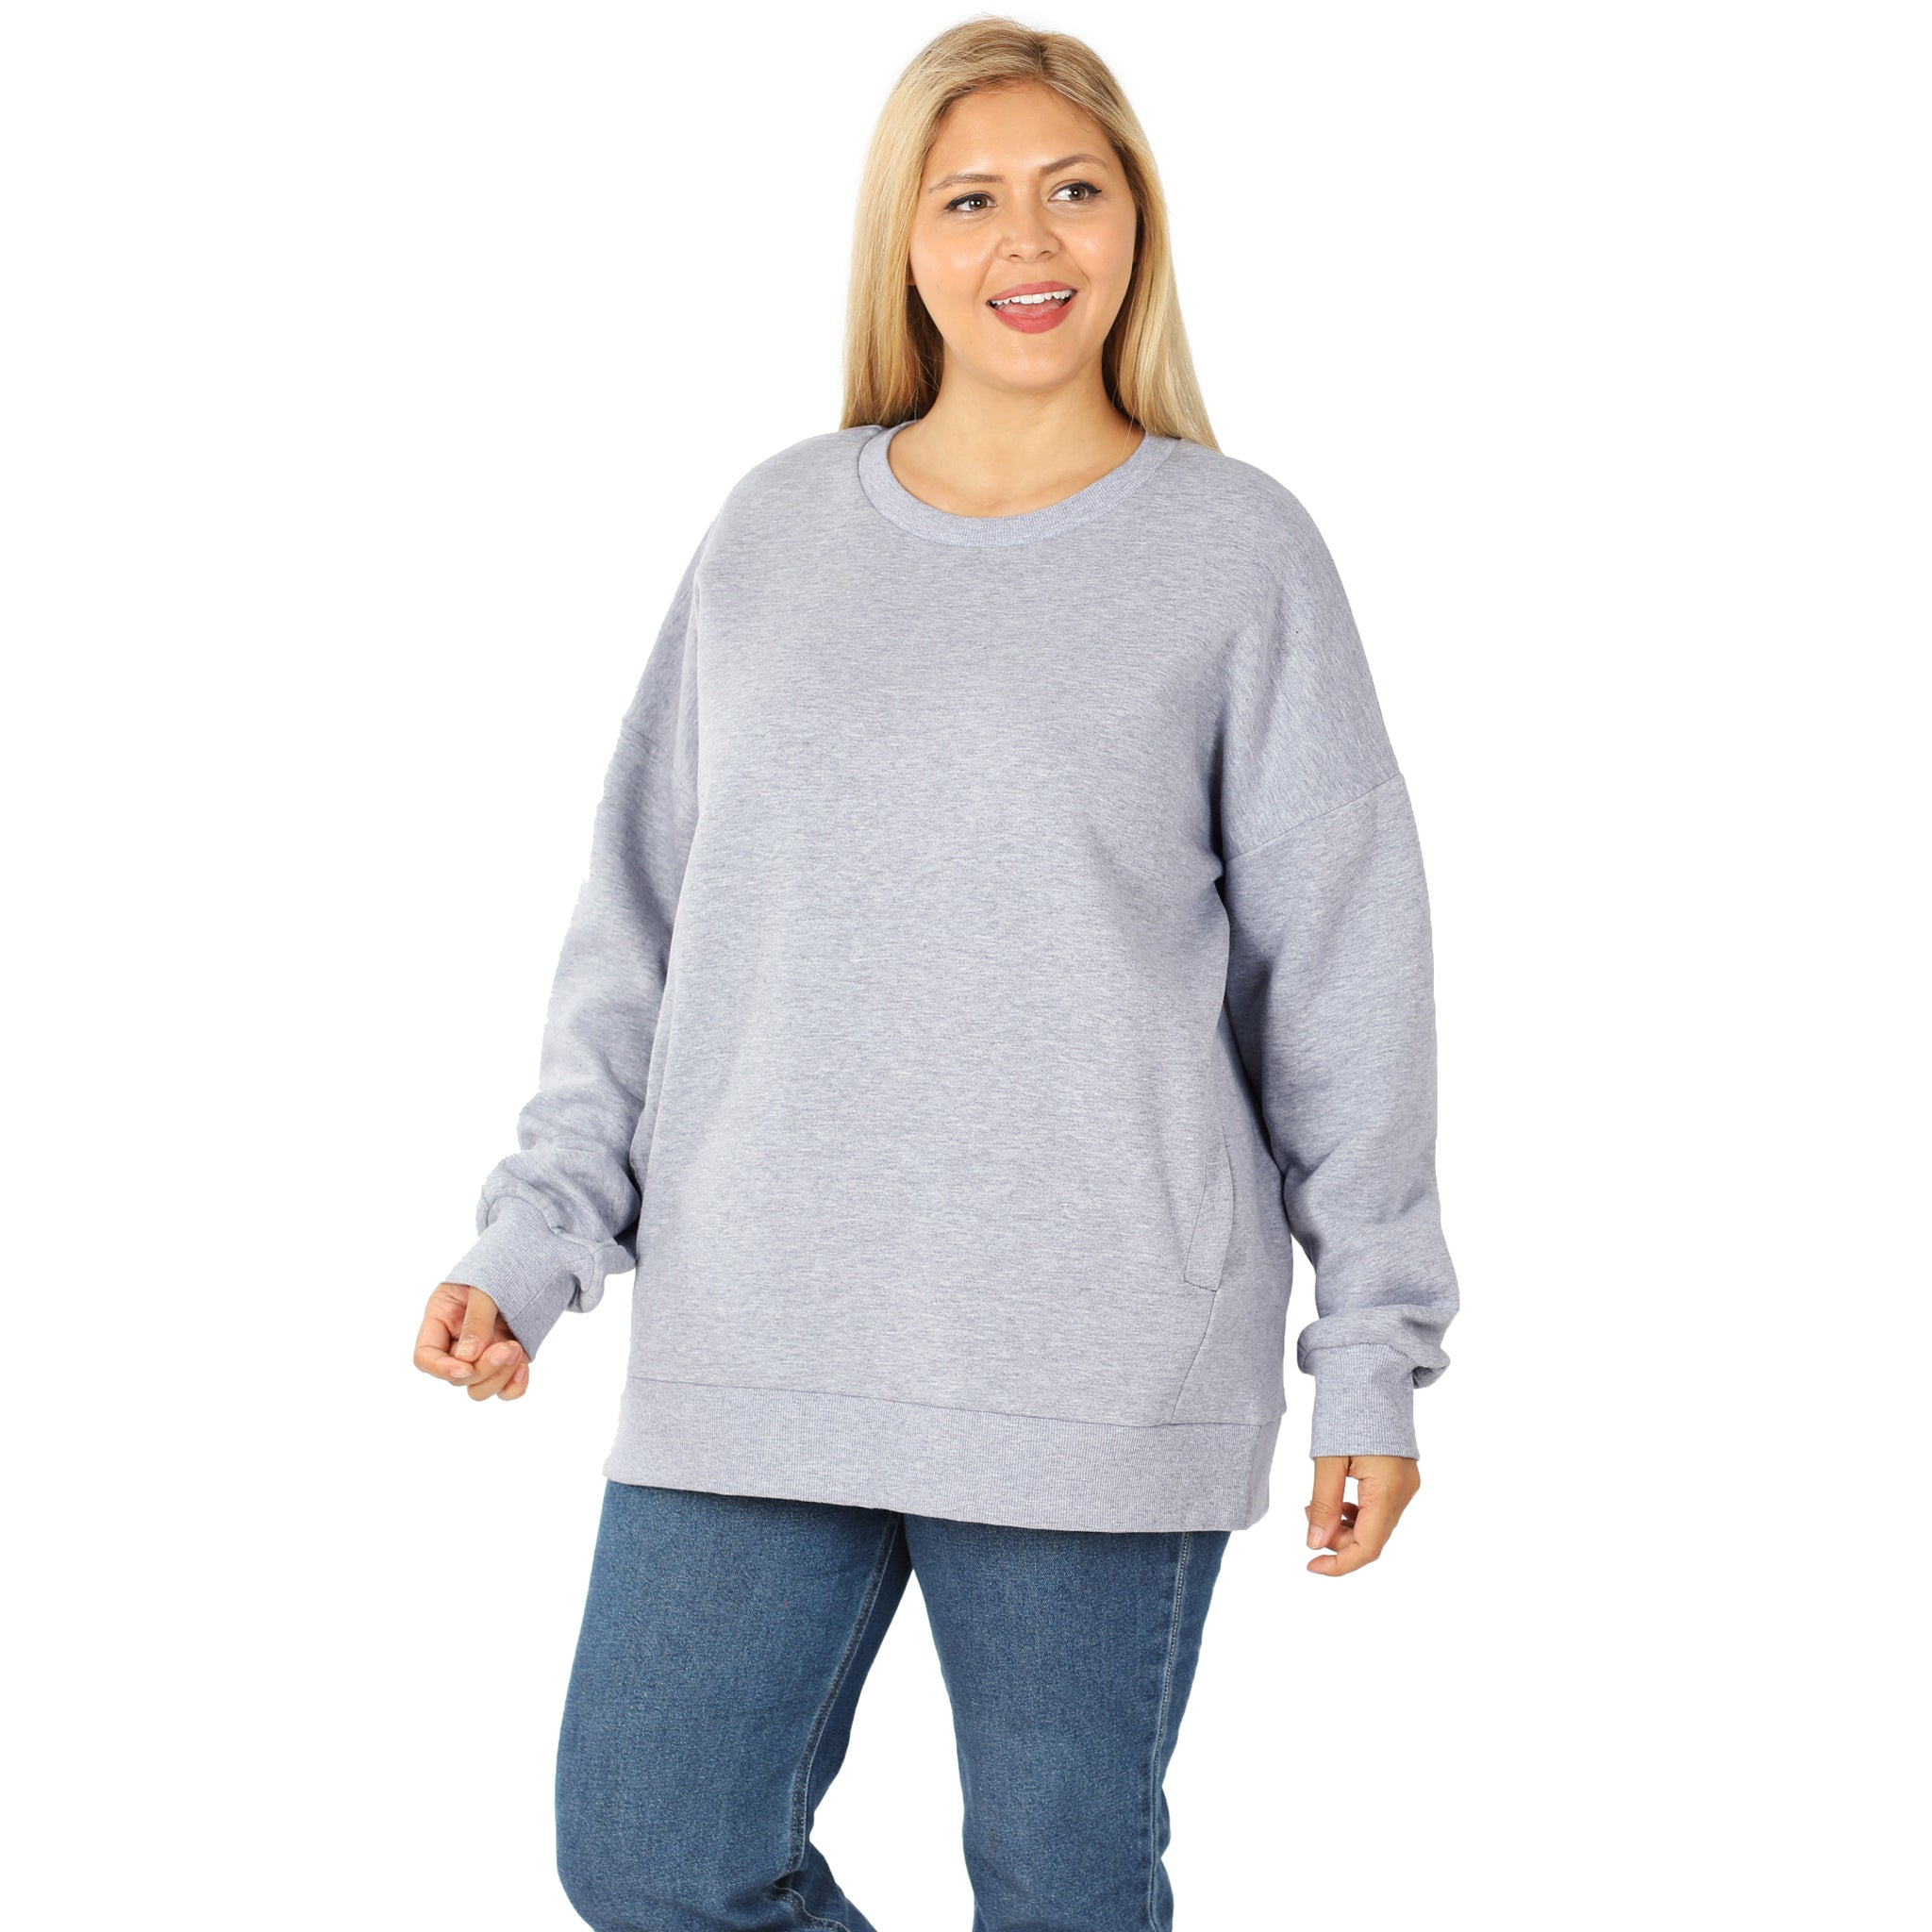 Abi's Round Neck Sweatshirt w/pockets